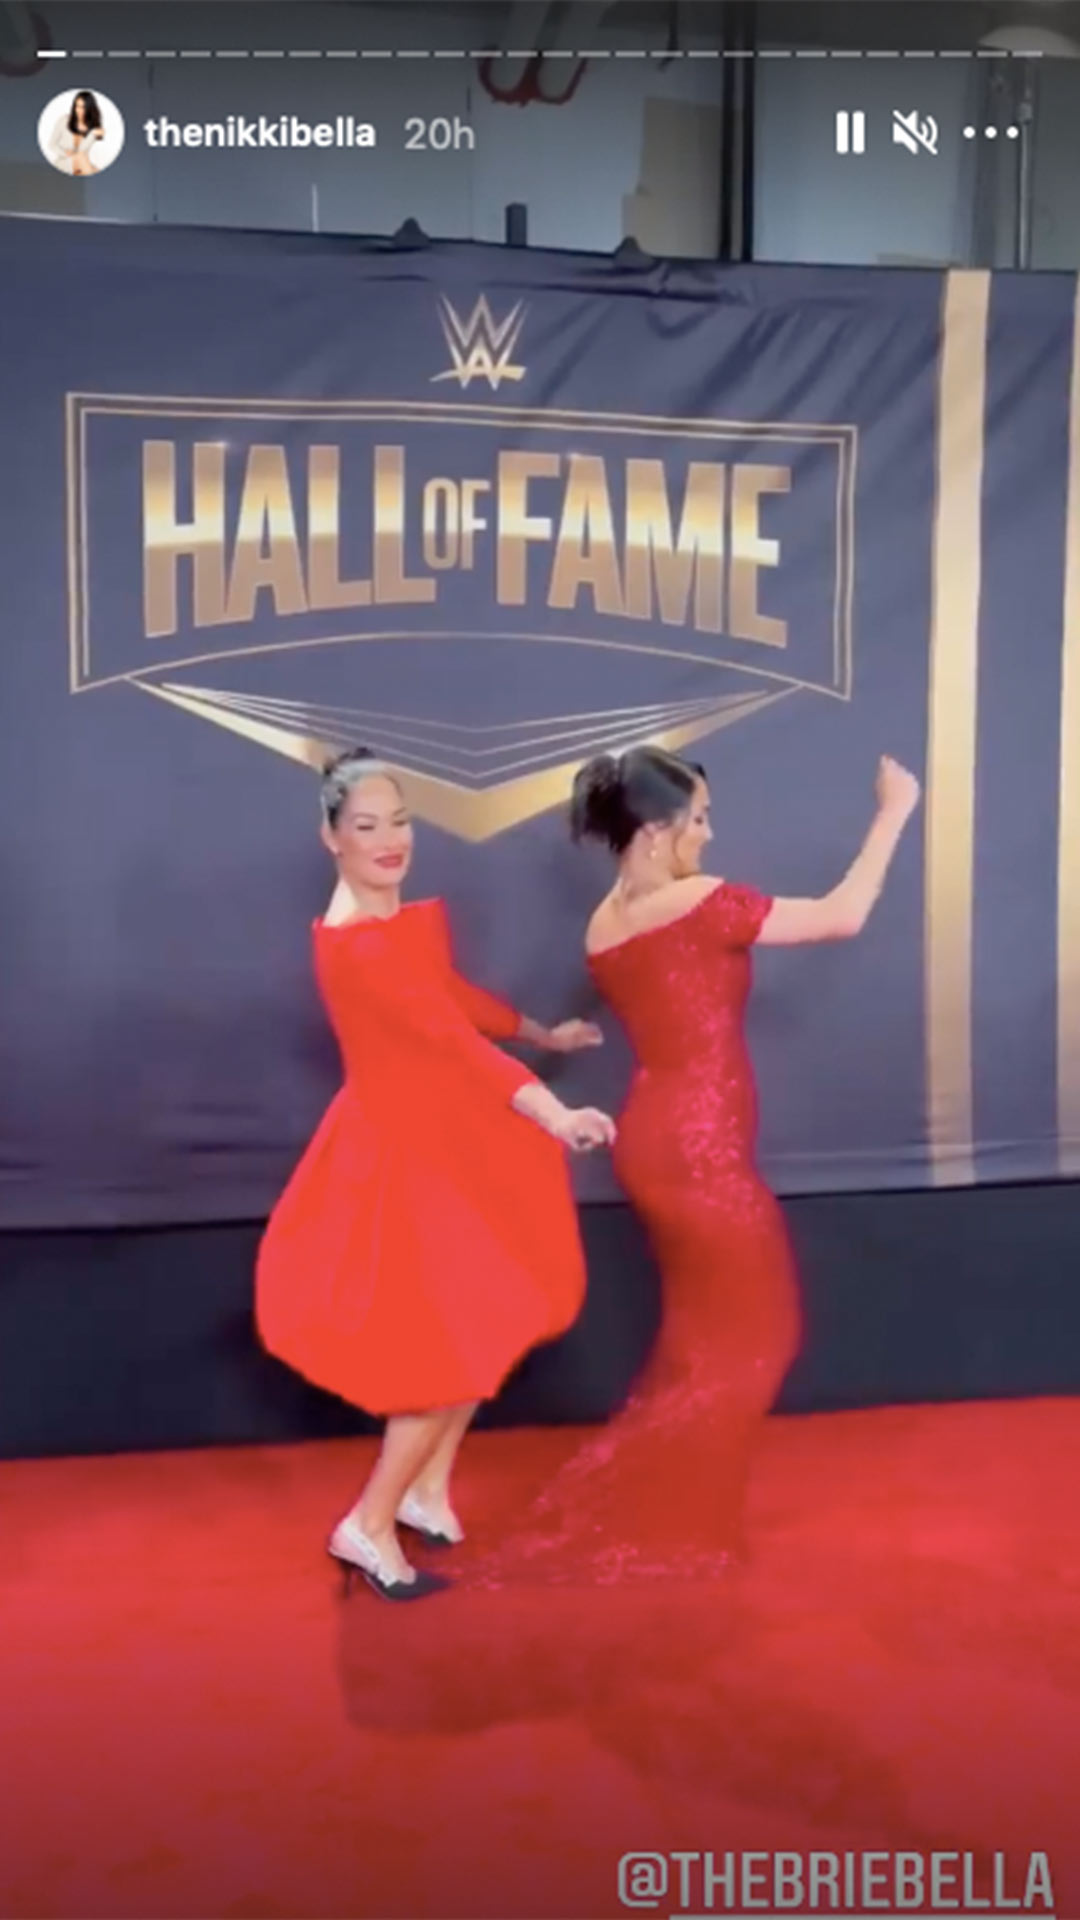 bella Twins www hall of fame